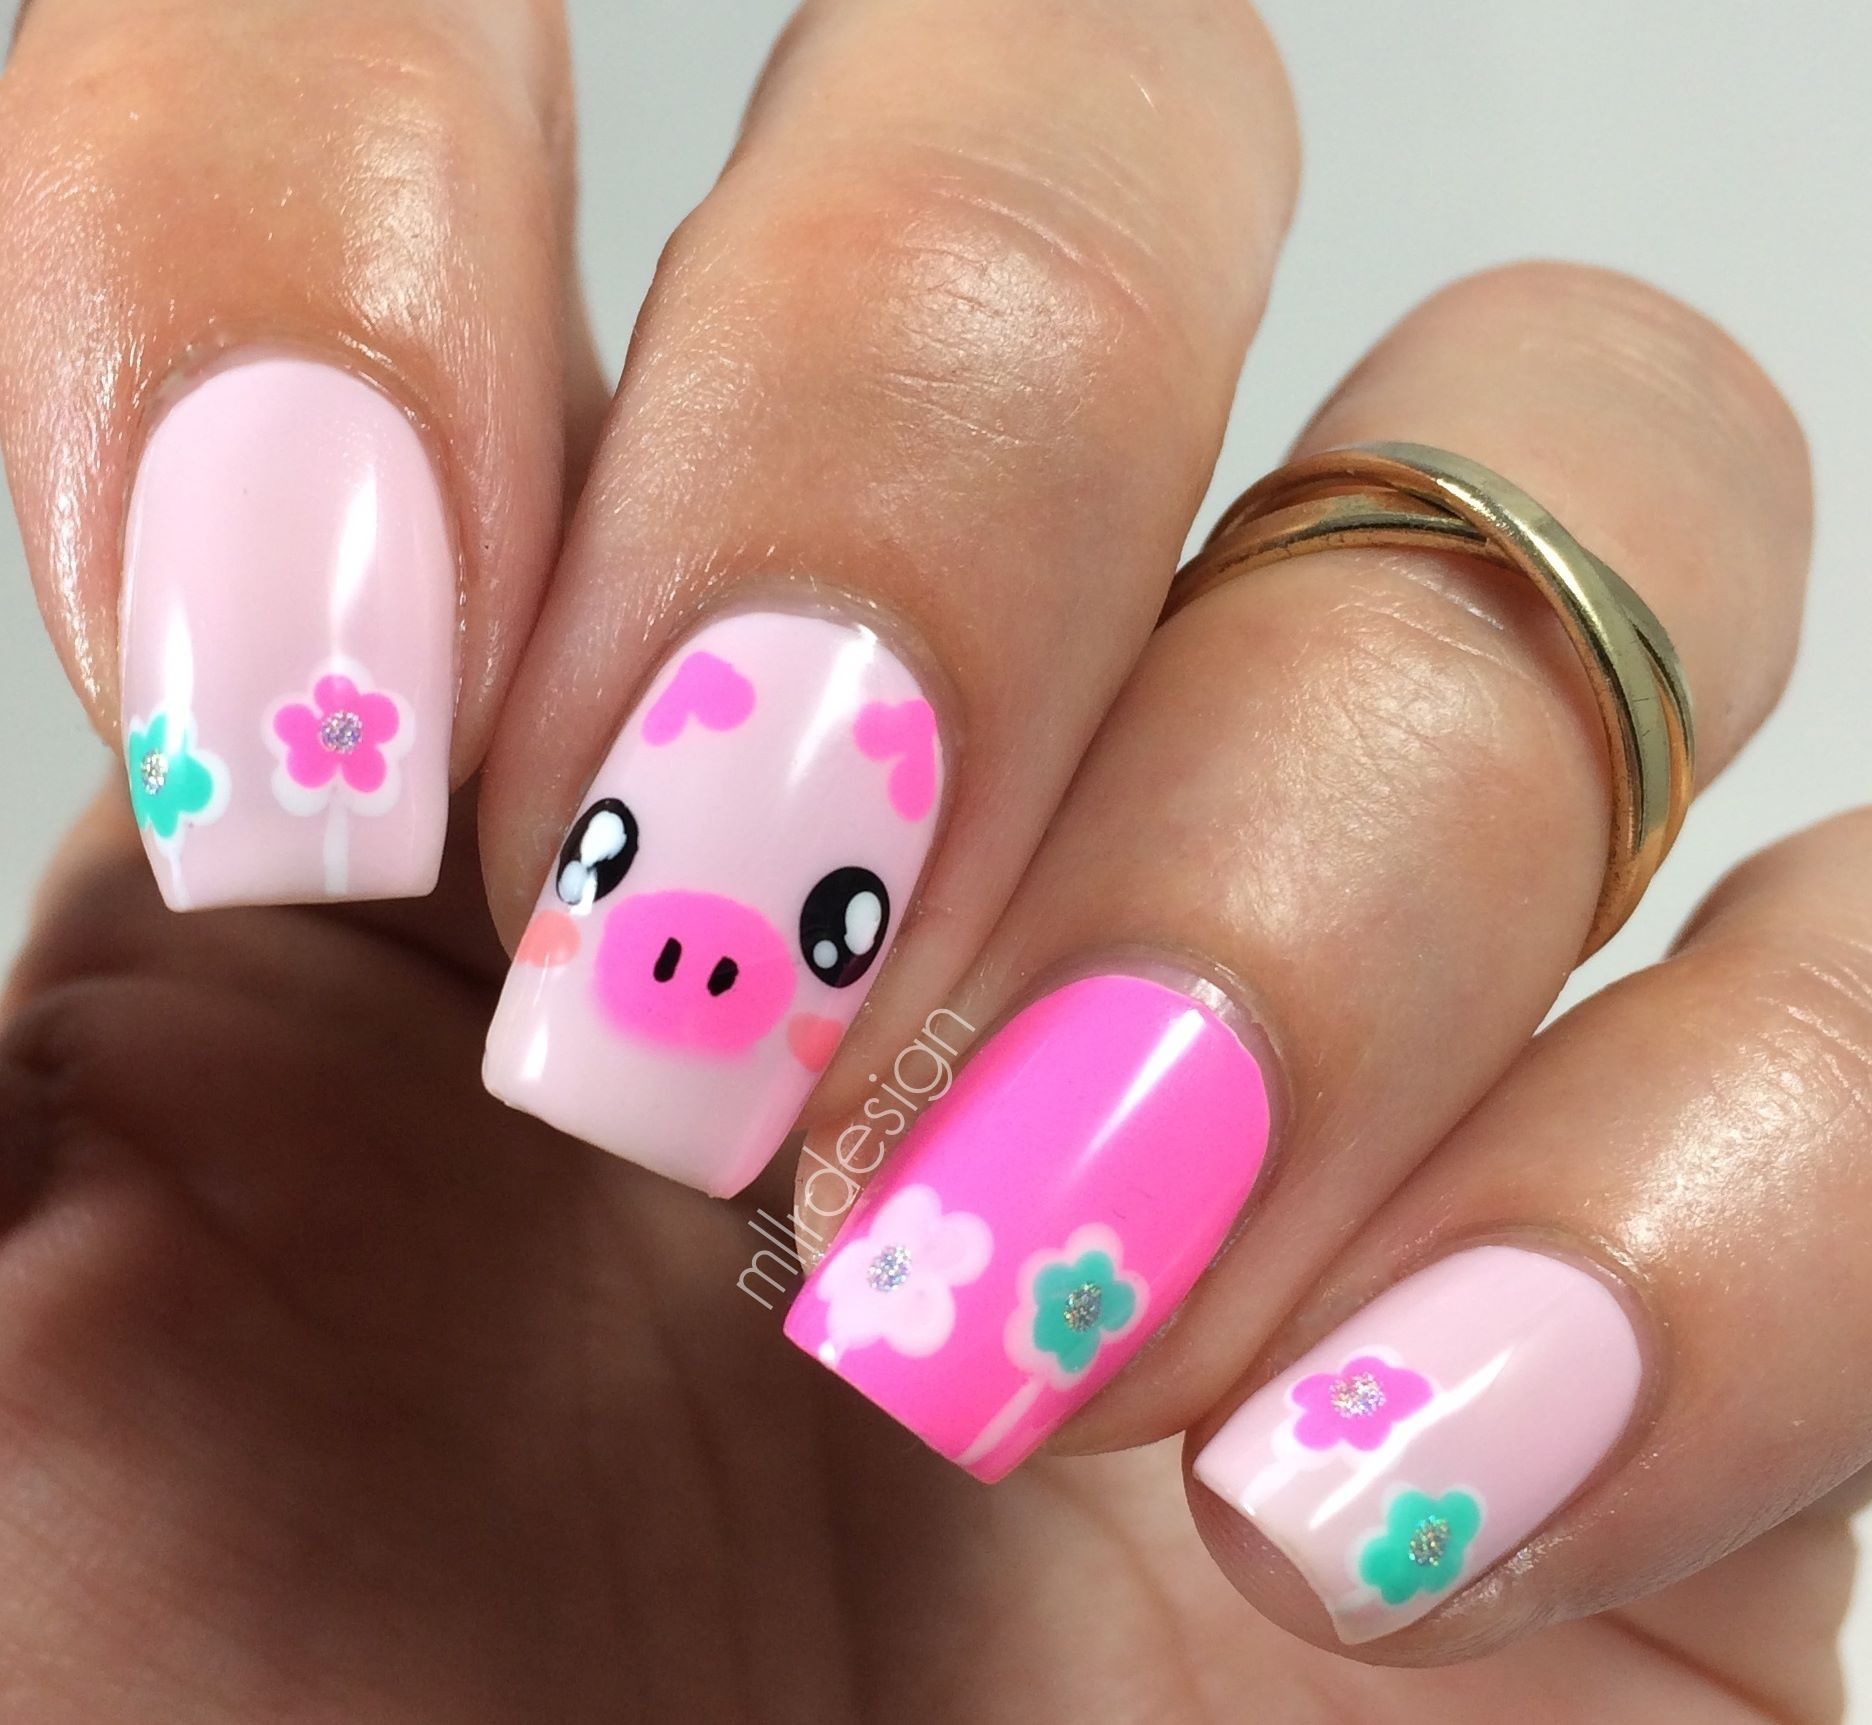 Pig Nail Art: Pin By Joan Ducksworth On Nails, Nails, Nails And Nail Art